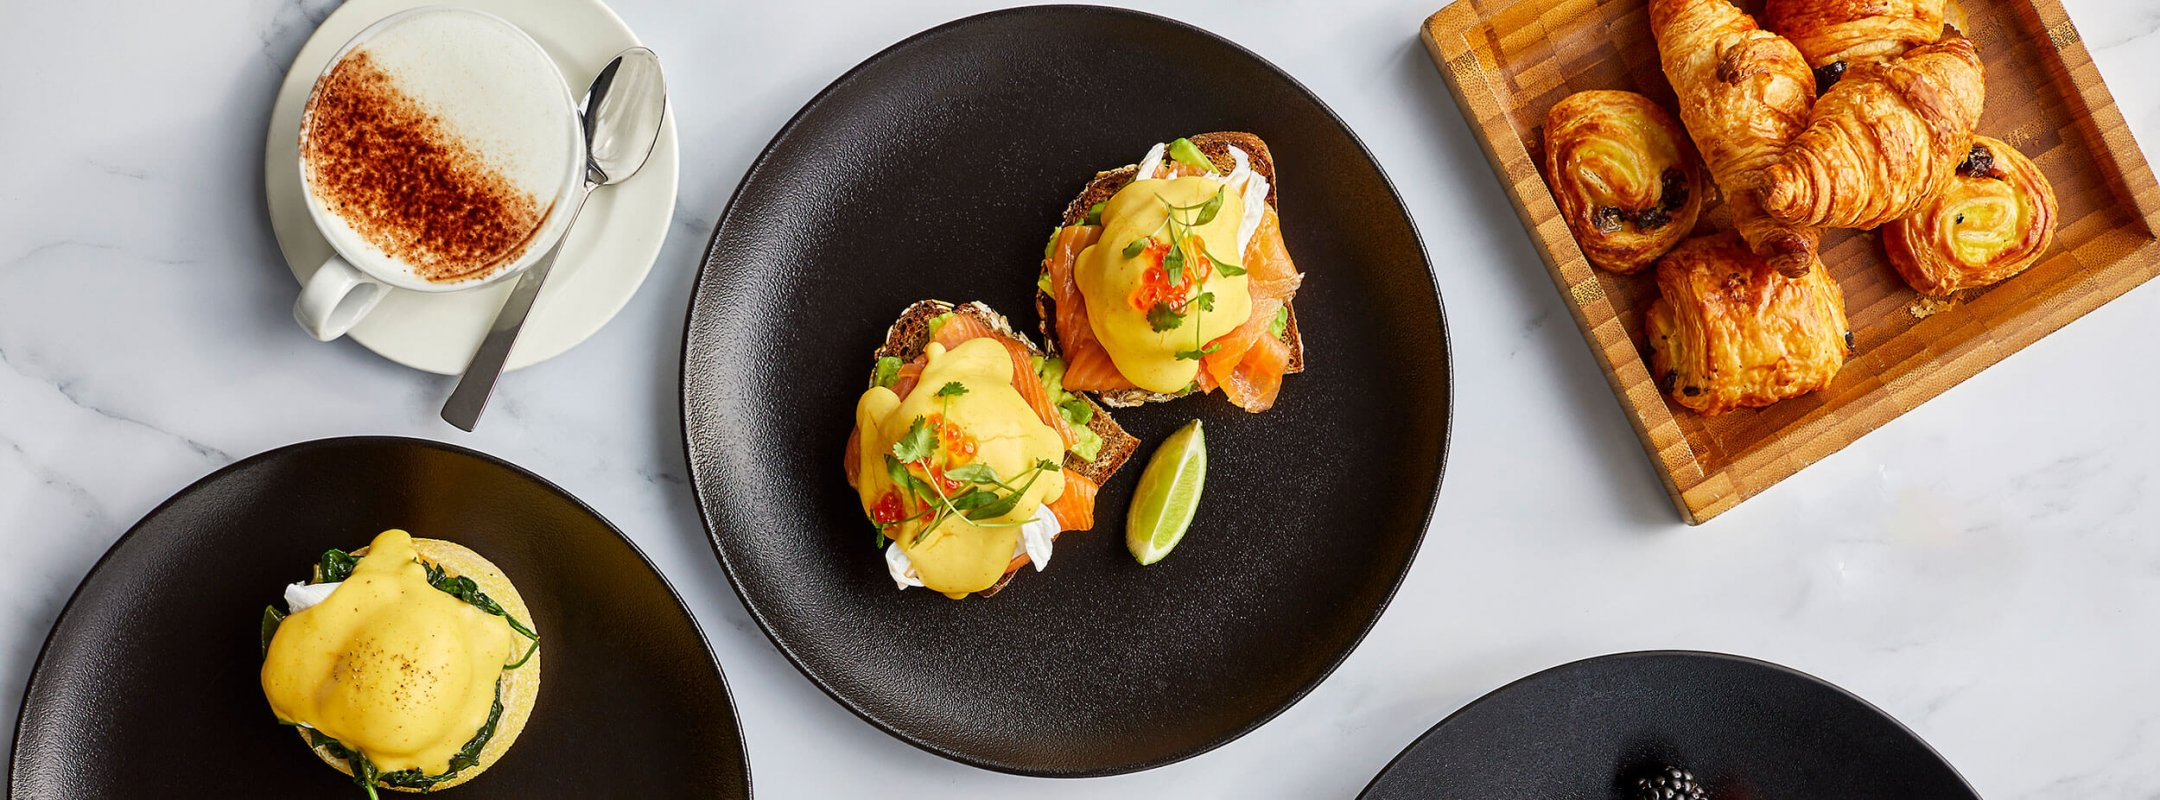 Business Breakfasts - Searcys at the Gherkin